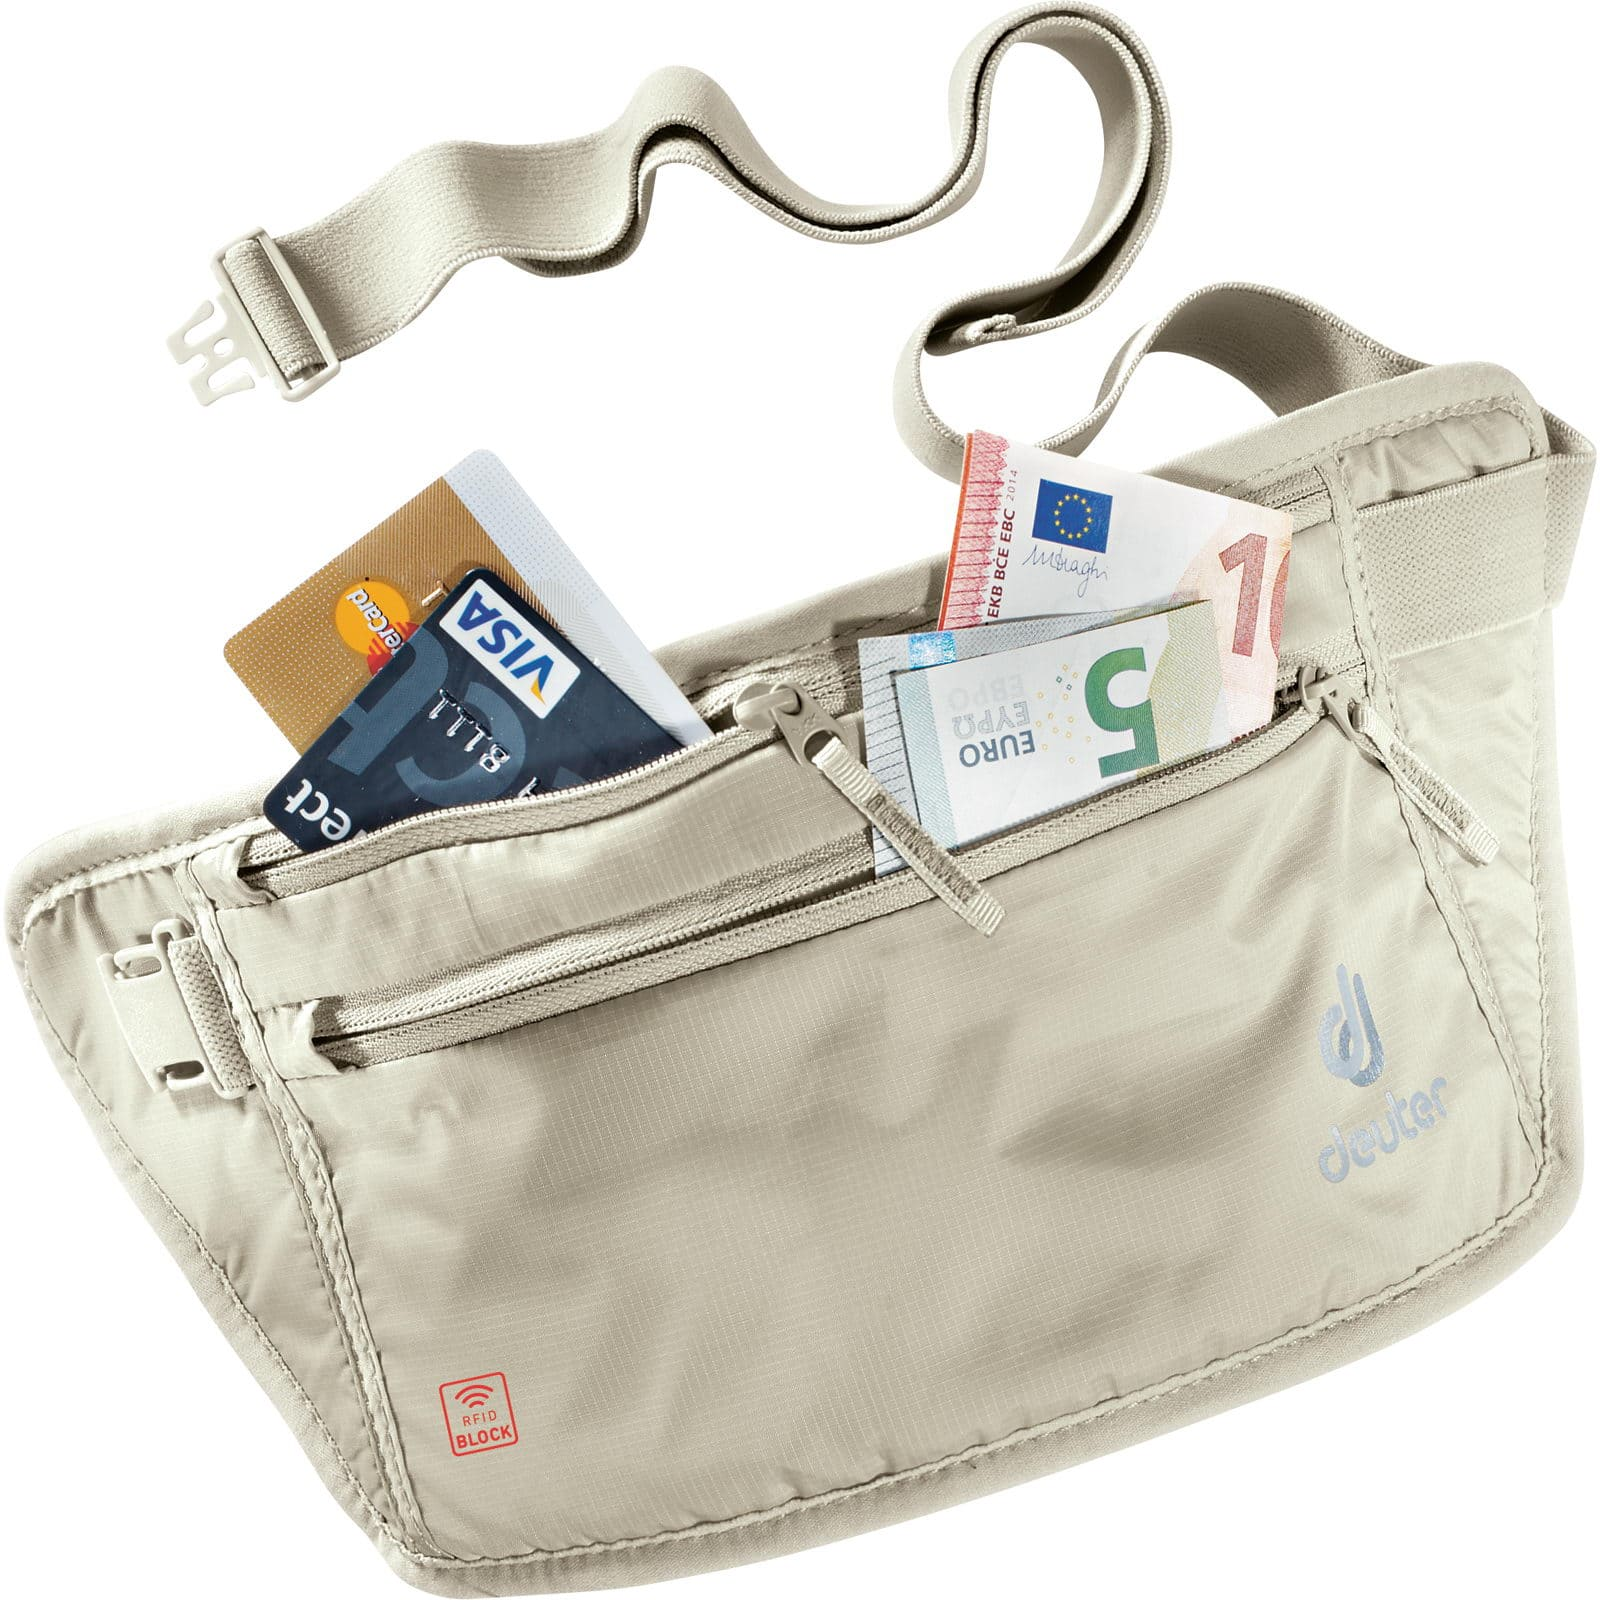 Deuter 'Security Money Belt II RFID Block' Gürteltasche sand